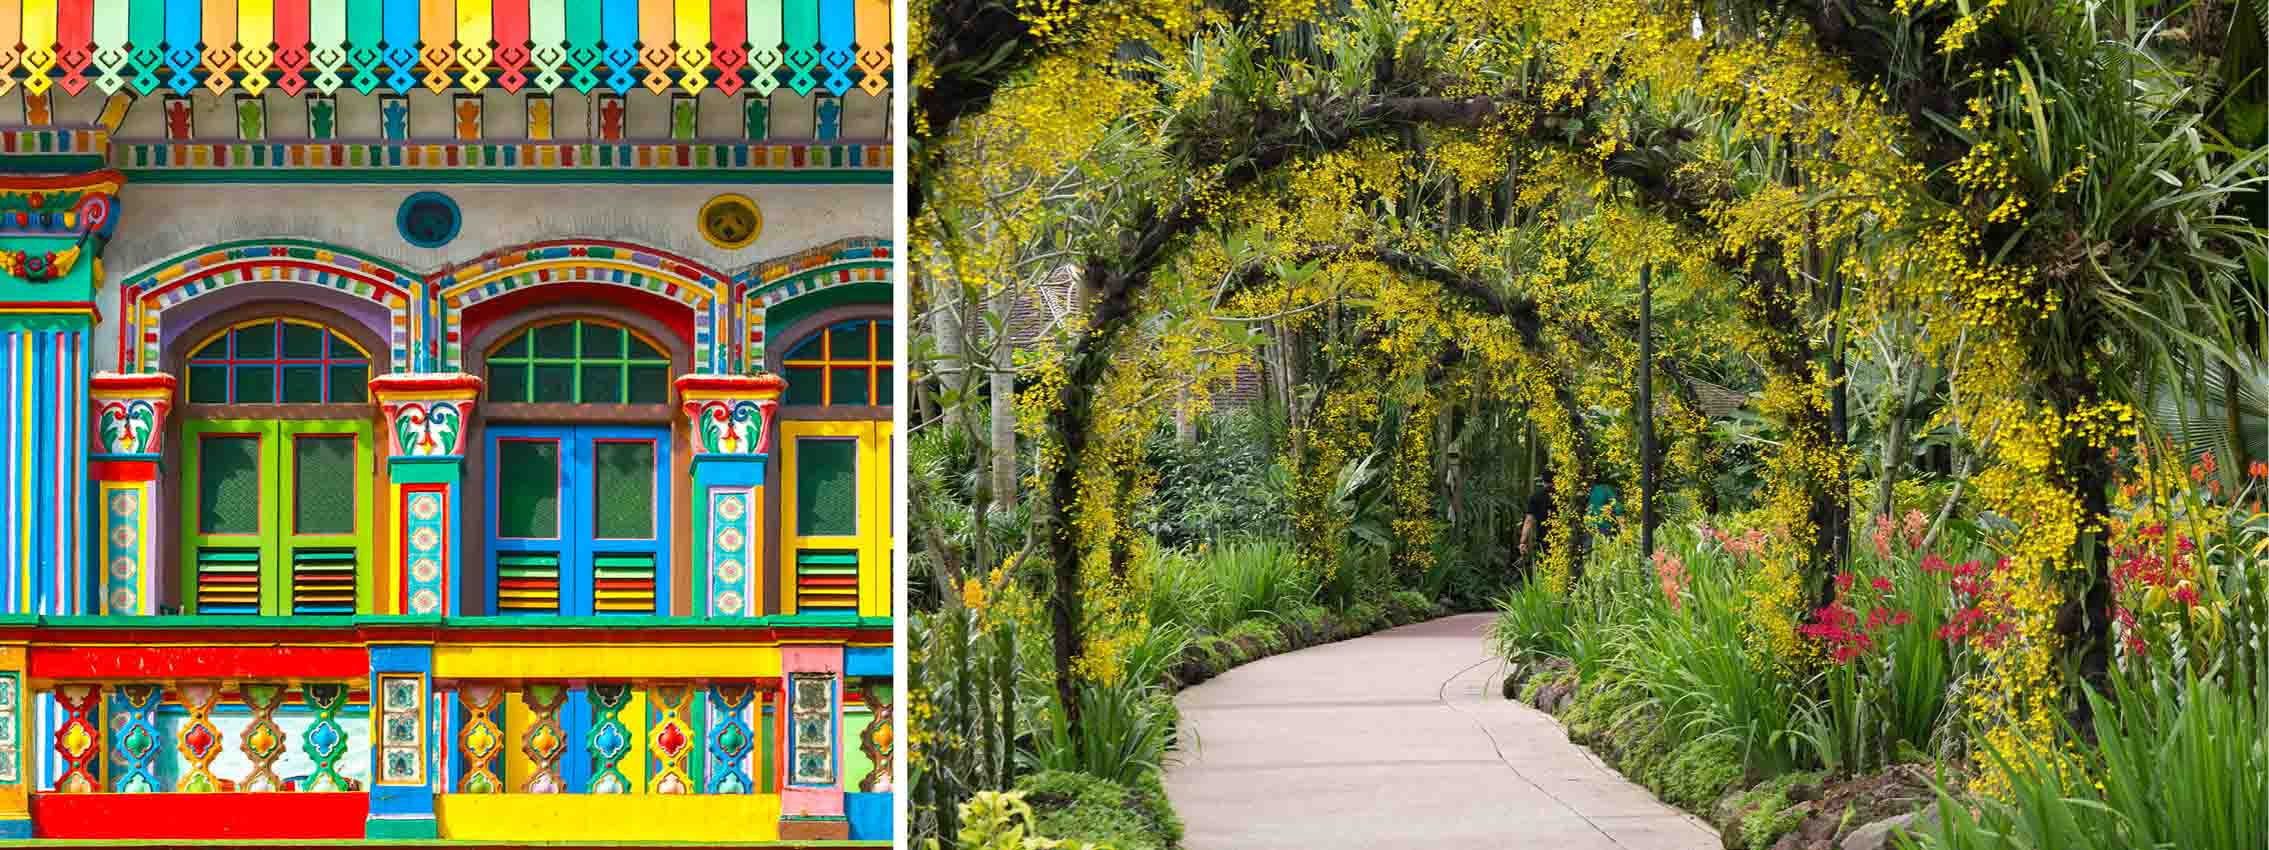 Little India og botanisk have i Singapore